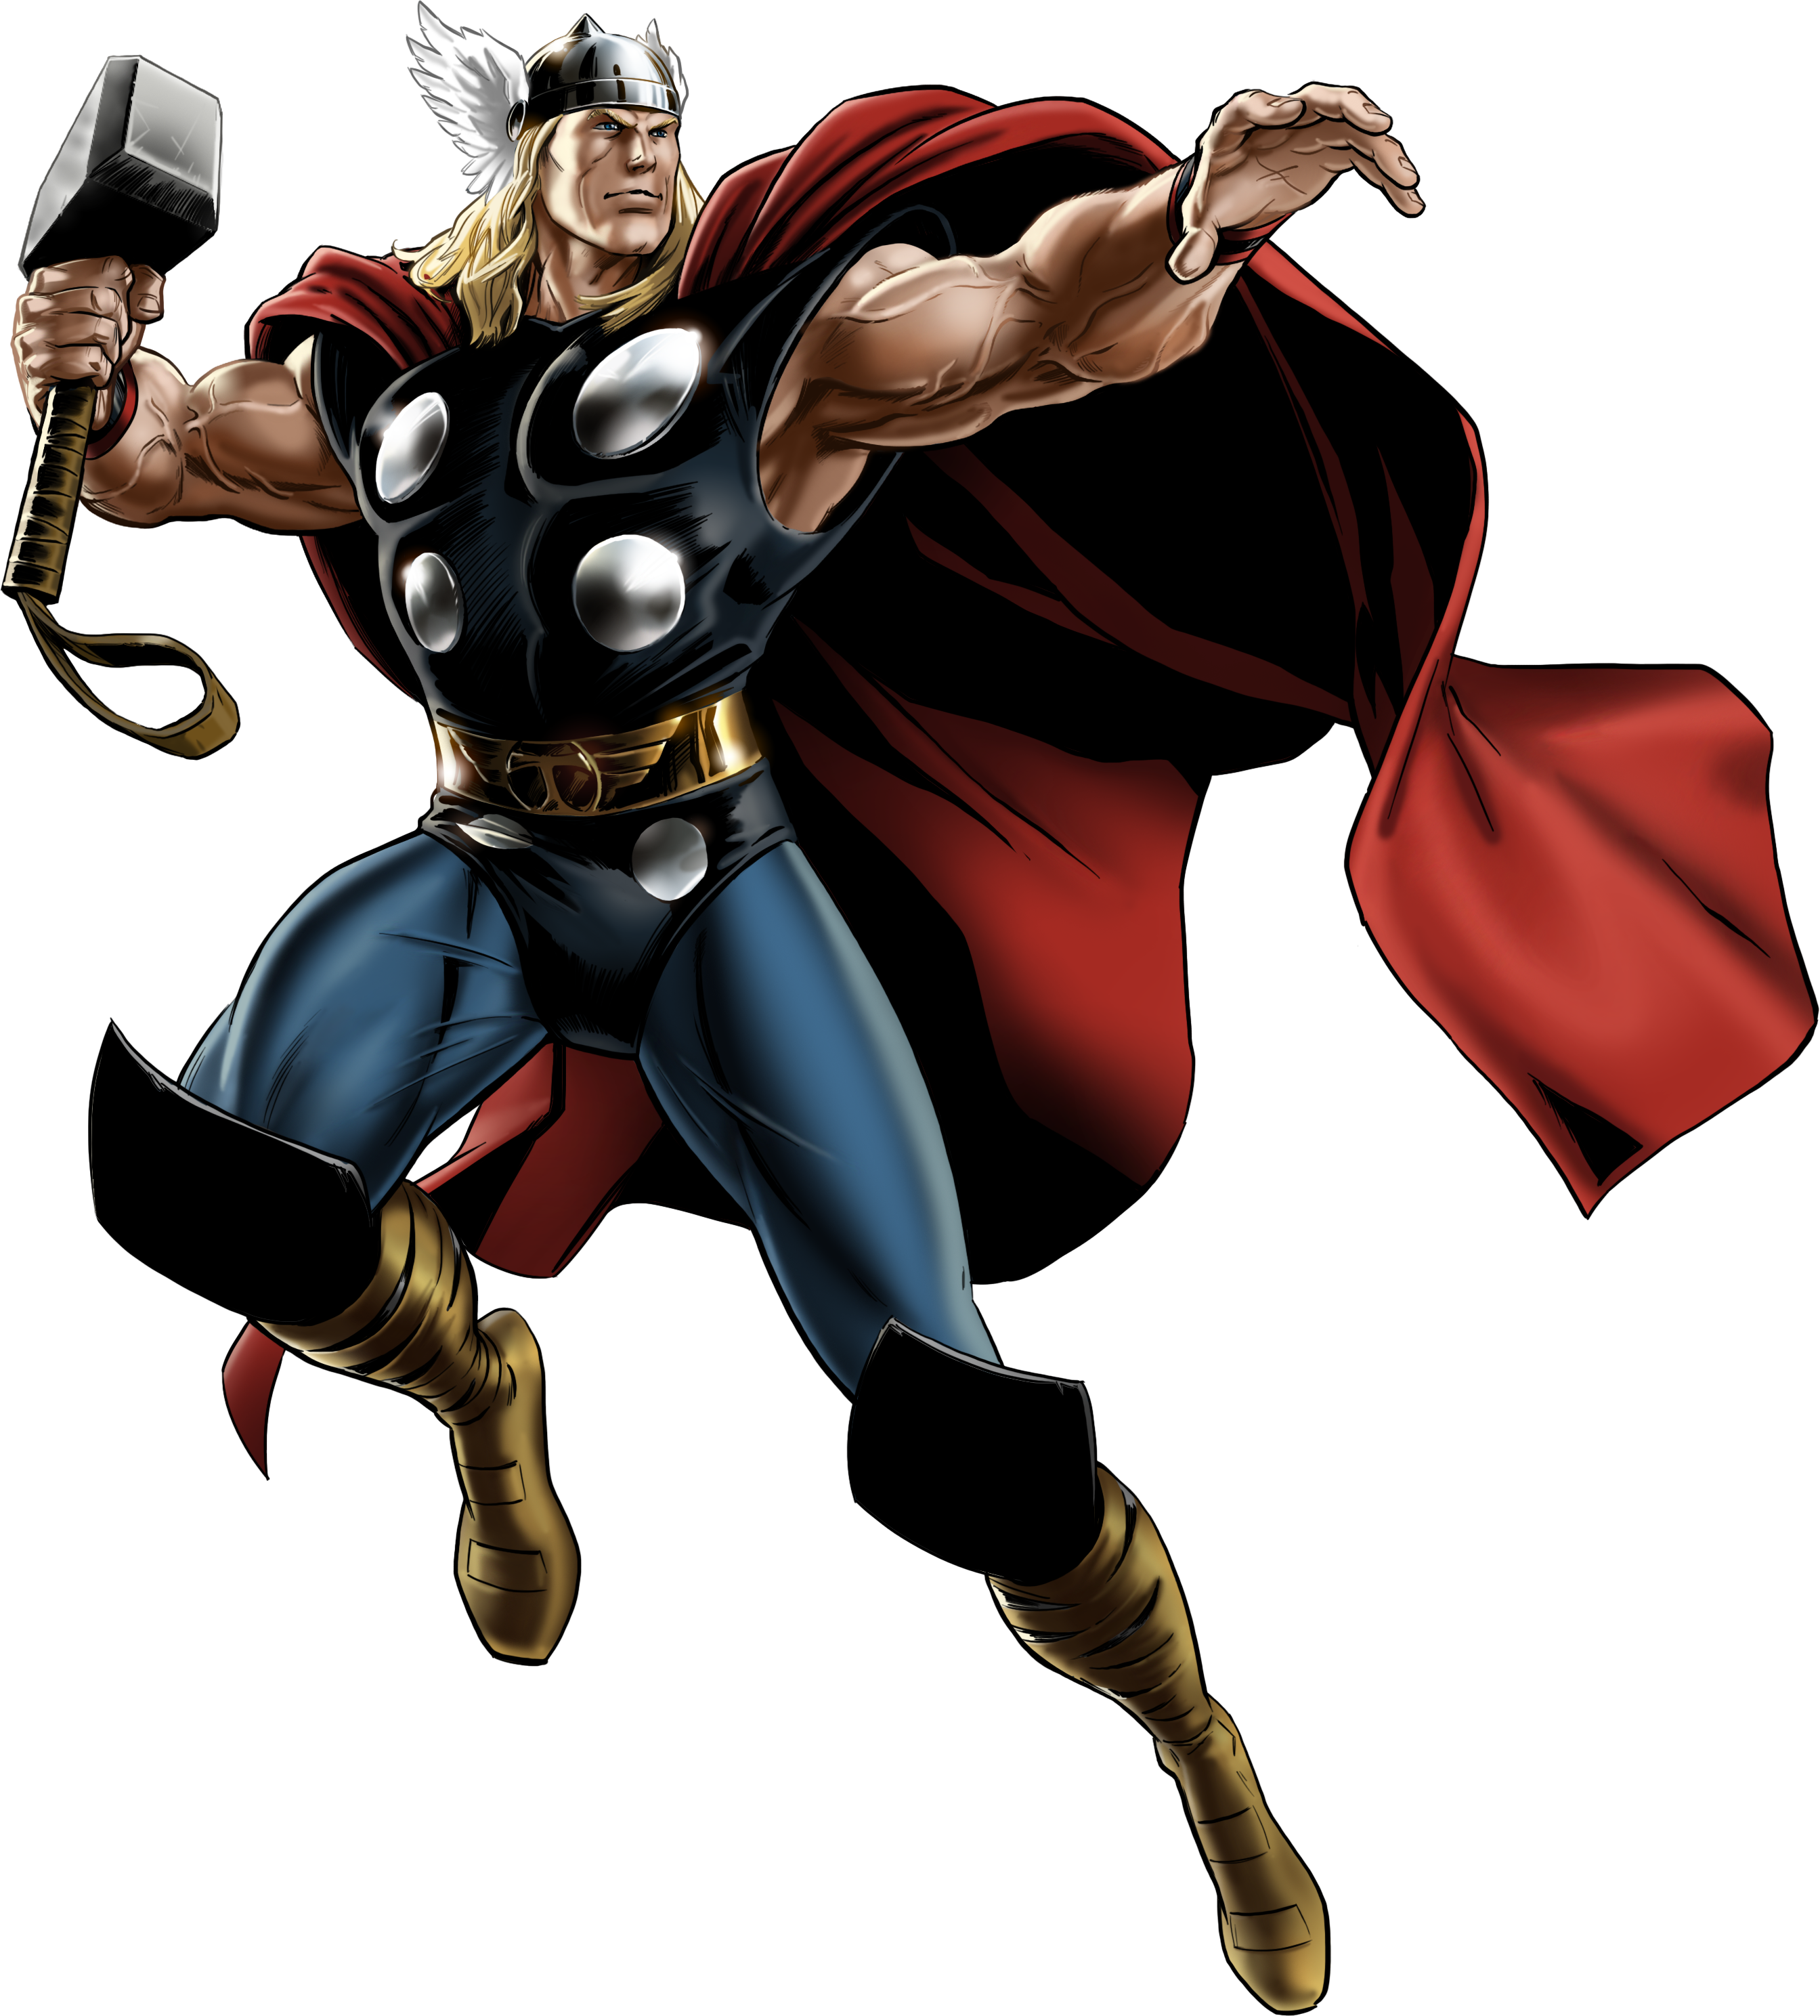 Thor comic png. Marvel avengers alliance classic